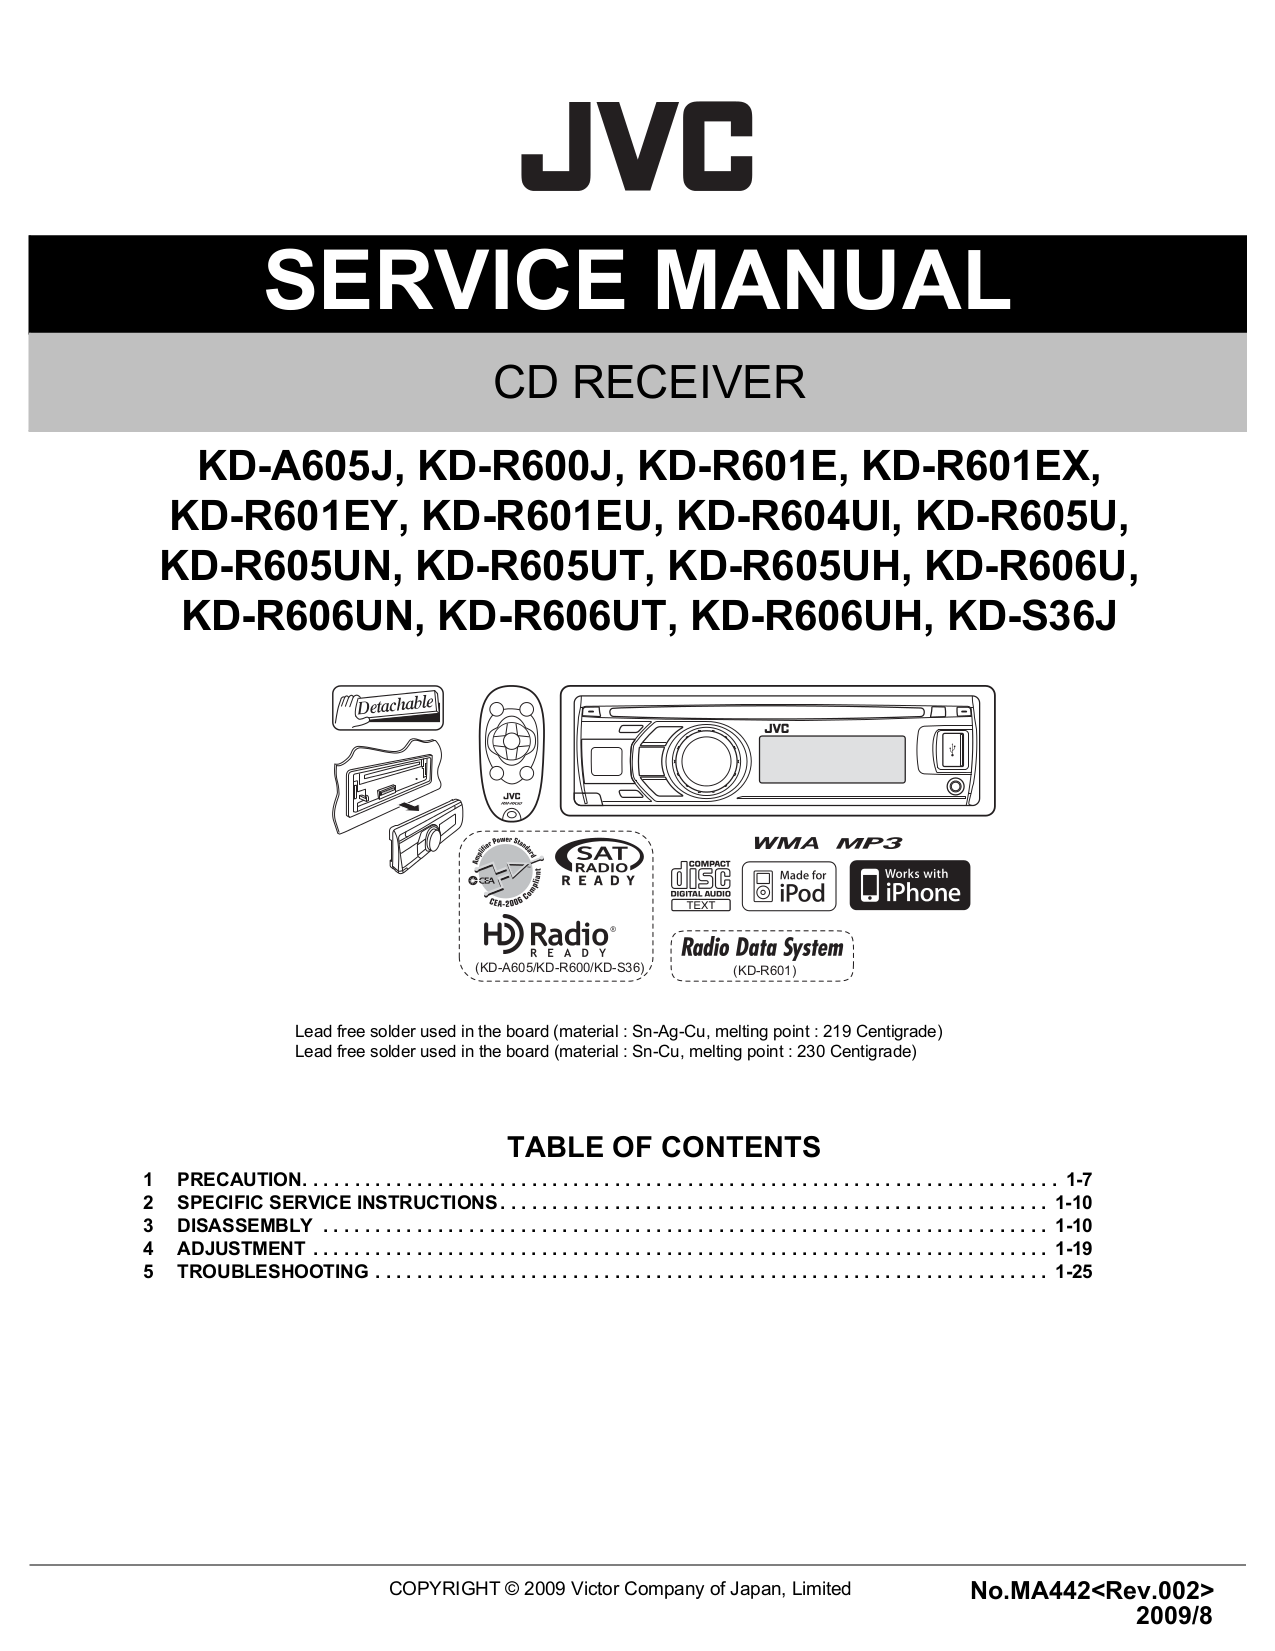 [SCHEMATICS_48EU]  Jvc Kd R730bt Car Stereo Wiring Diagram. jvc kd 60rbt wiring diagram. jvc kd  r330 wiring diagram. jvc k8 radio wiring diagram. jvc kd r416 wiring diagram.  lanzar vibe 12 39 39 | Jvc Kd R730bt Car Stereo Wiring Diagram |  | A.2002-acura-tl-radio.info. All Rights Reserved.